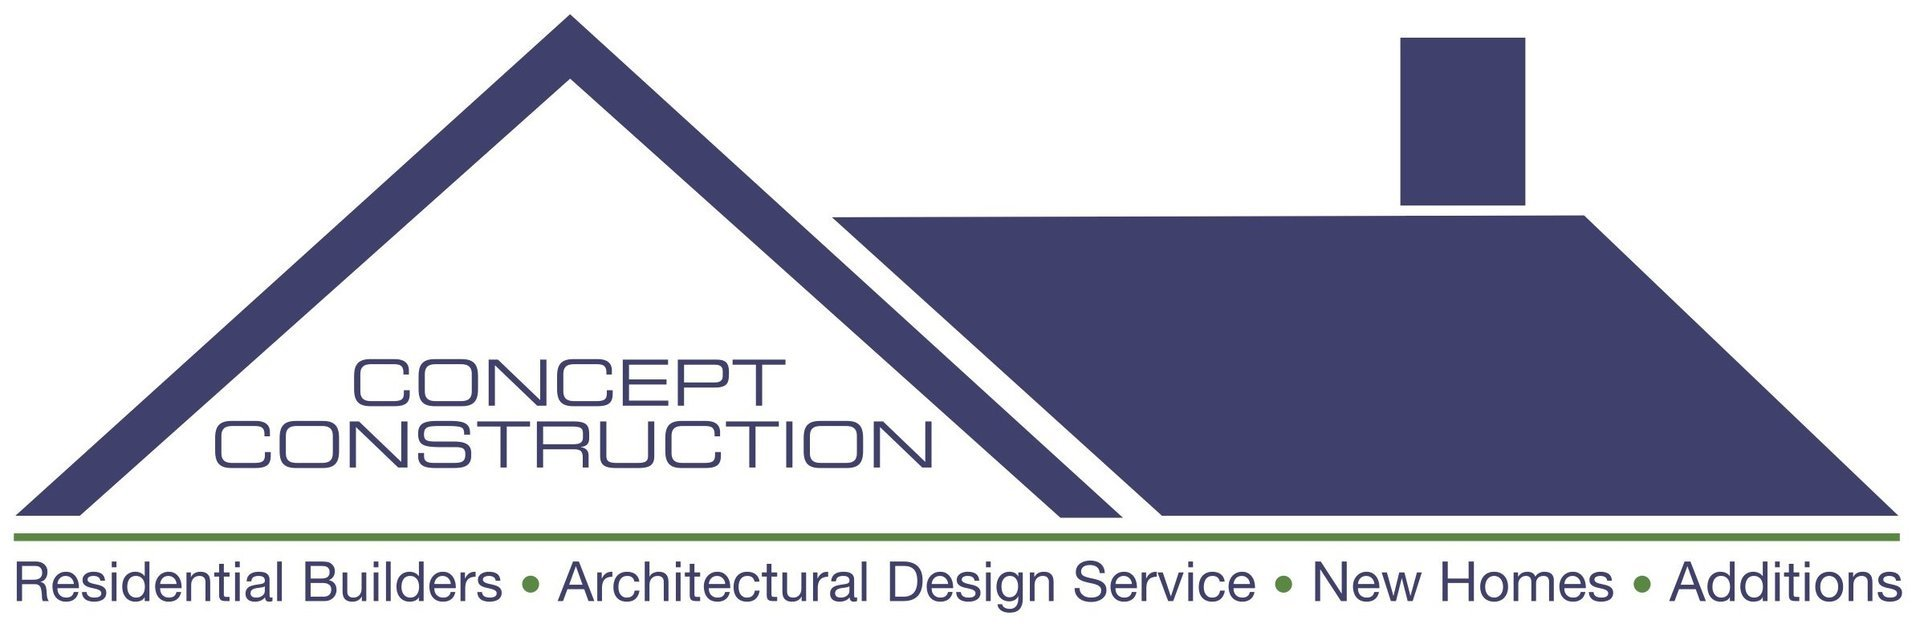 Concept Construction logo